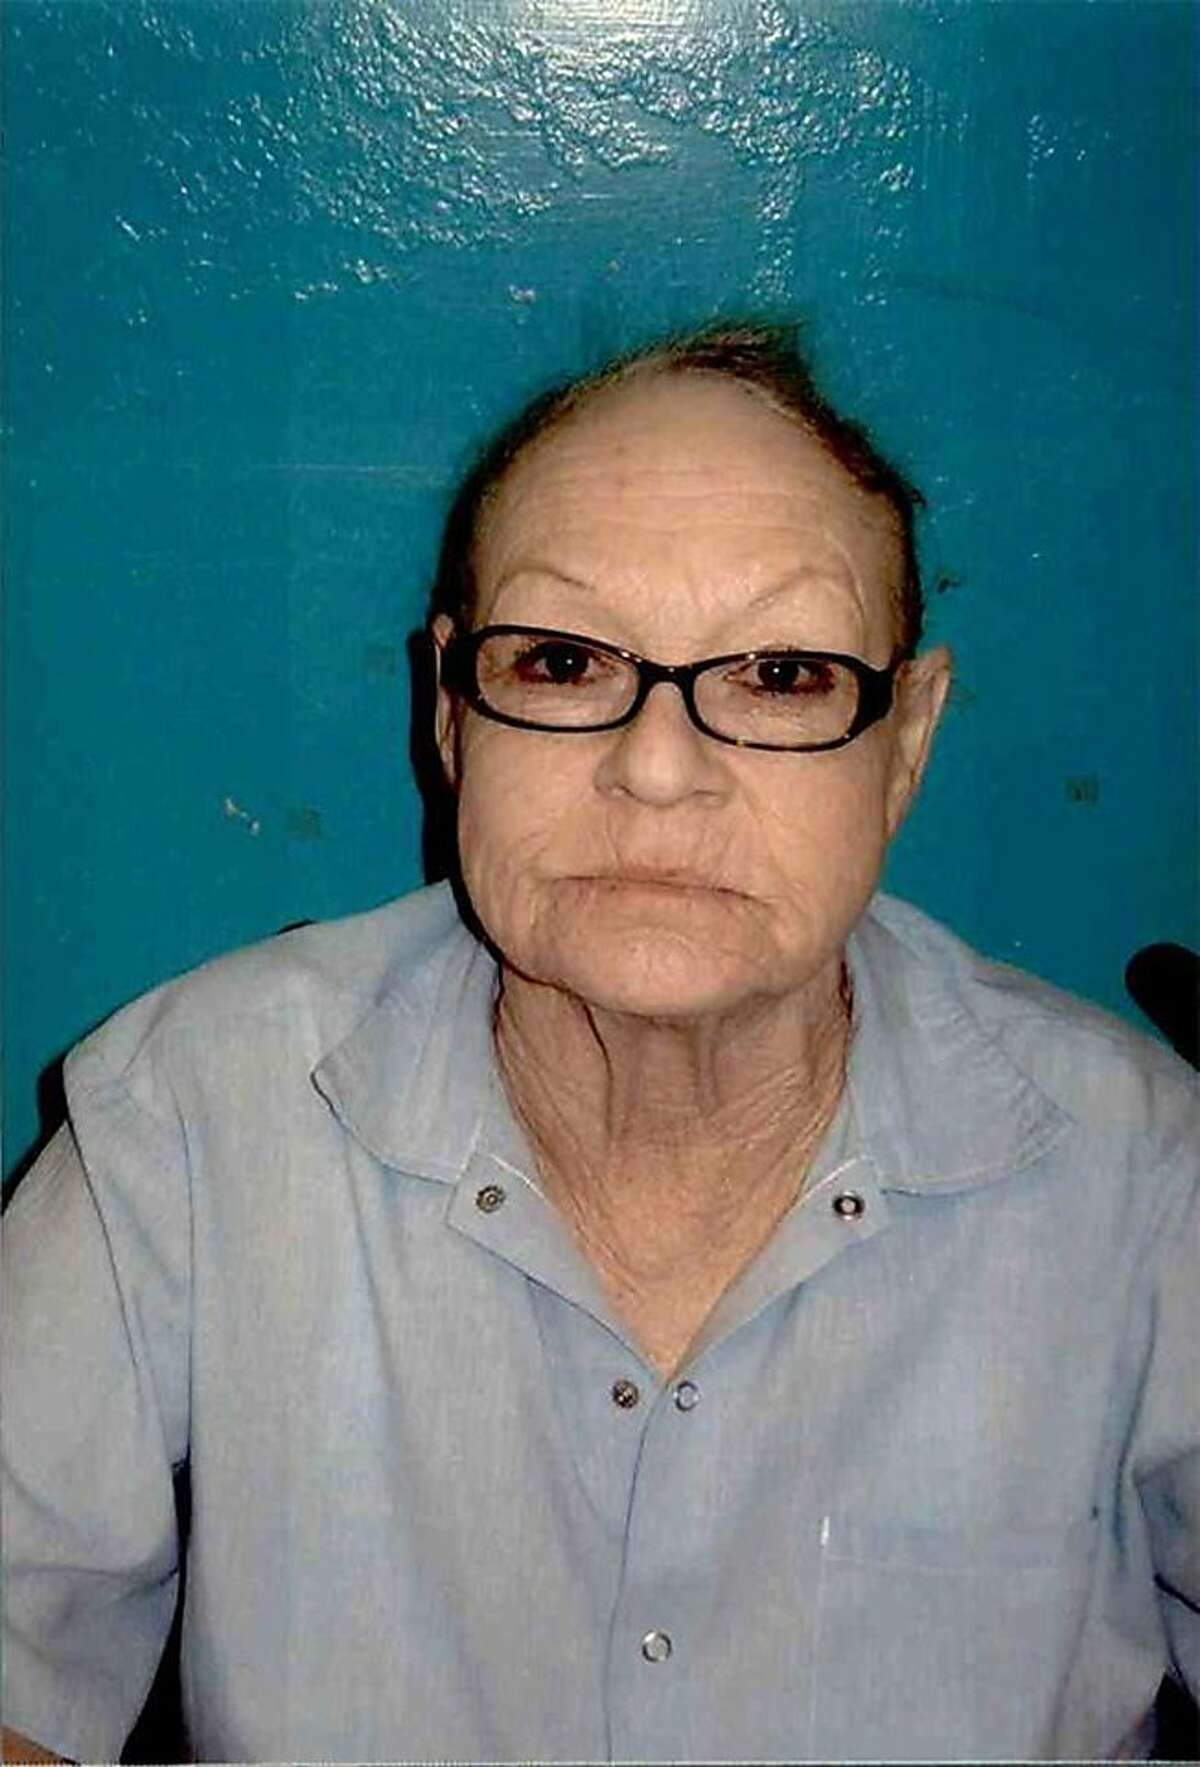 Glenda Virgil was found suitable for parole, having been sentenced to 17years to life in 1987 for the second degree murder of her husband after a long history of battering.